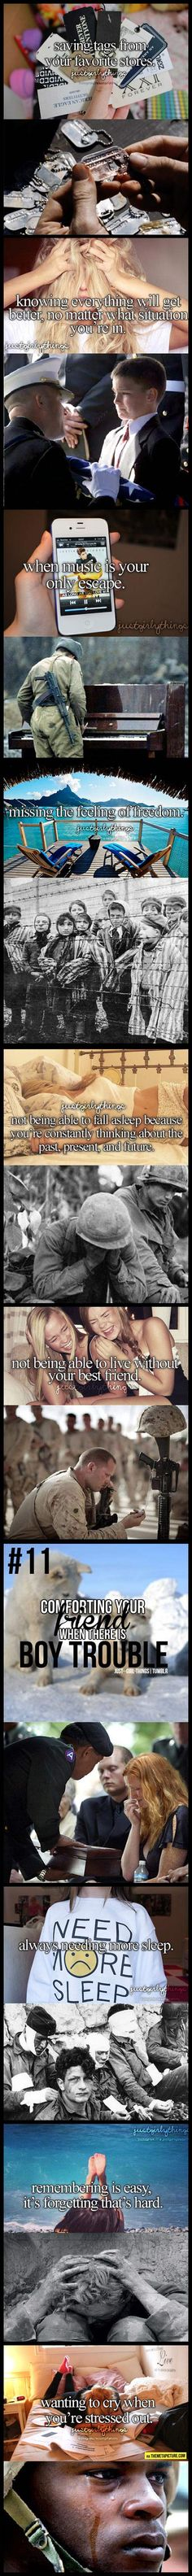 This made me cry Military are awesome They fight for our country without caring for their lives just wanting ot make society safe. They lose comrades who were their best of friends. RESPECT THE MILITARY